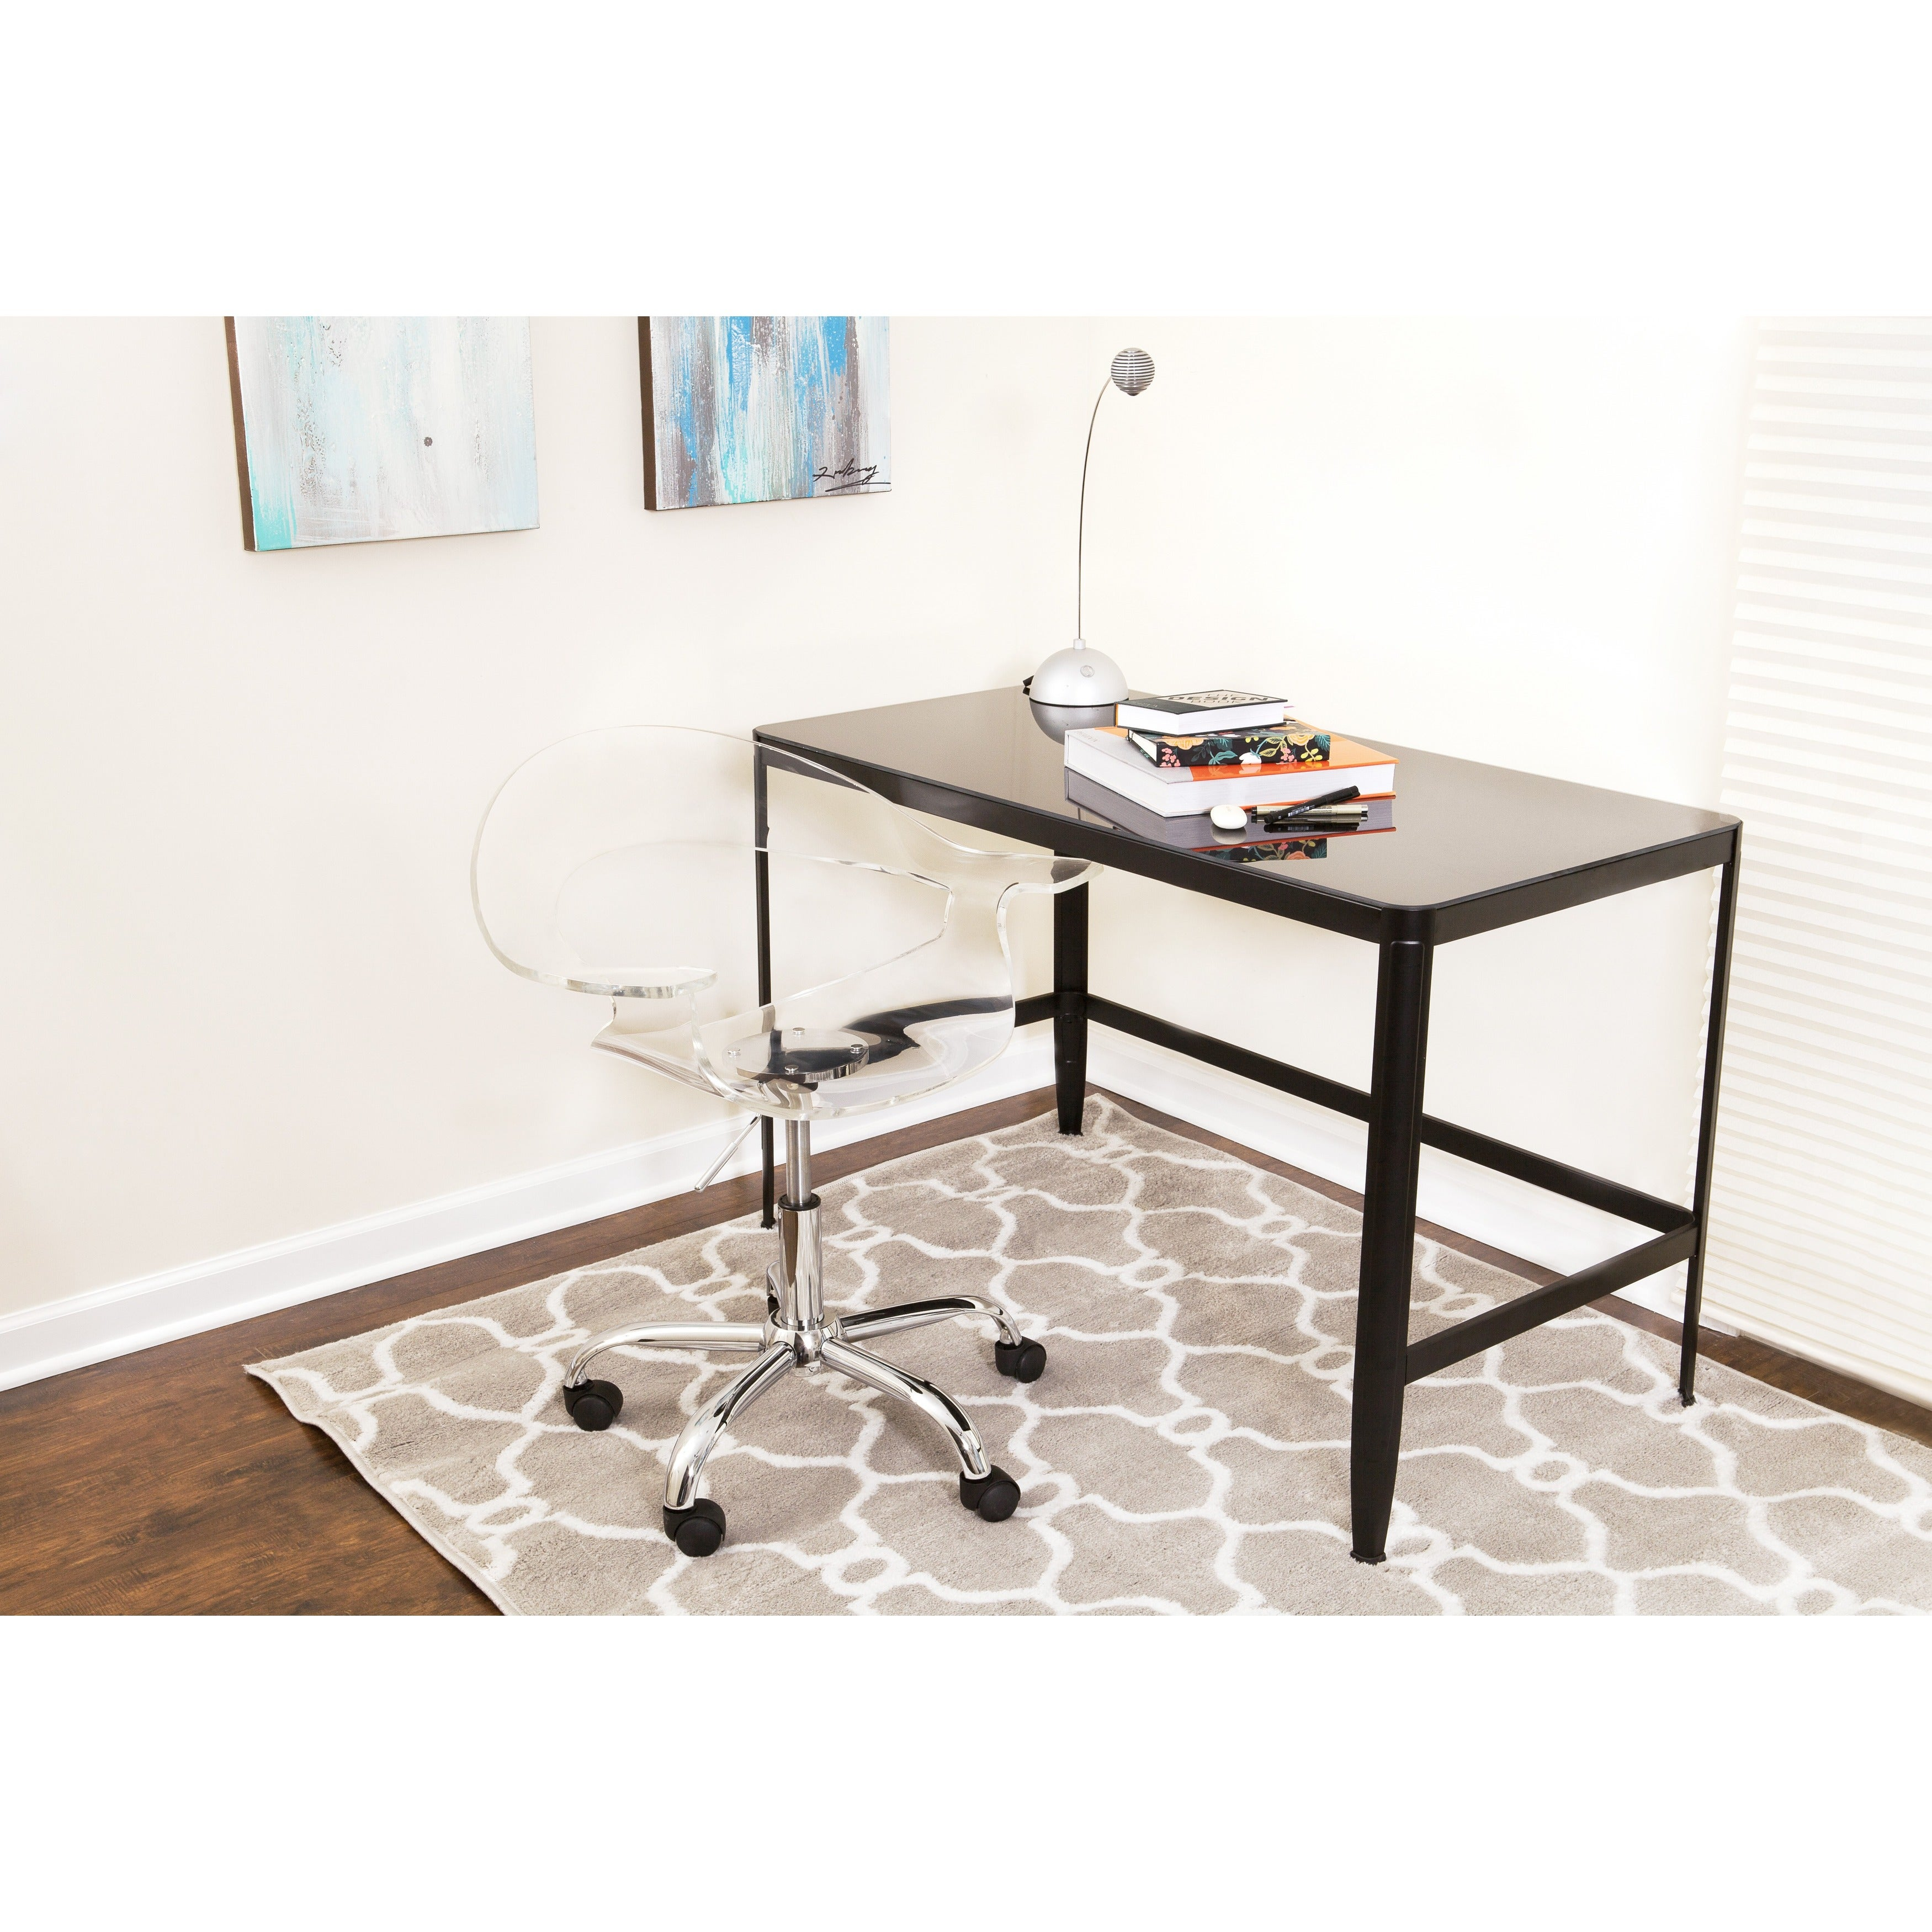 Charming Black Retro Office Desk/ Drafting Table   Free Shipping Today   Overstock    13457483